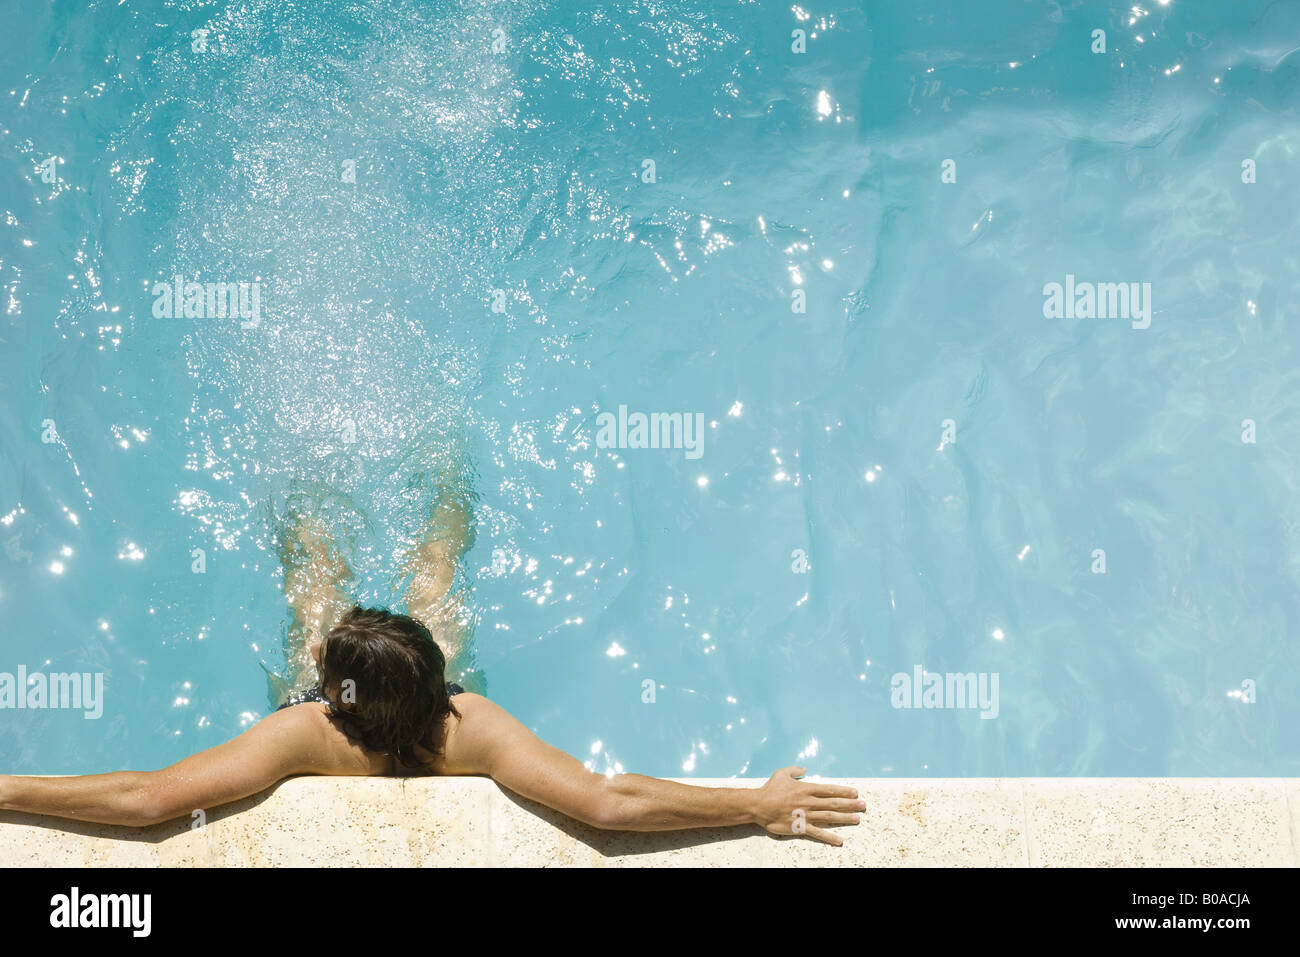 Man in swimming pool, holding on to edge, high angle view - Stock Image